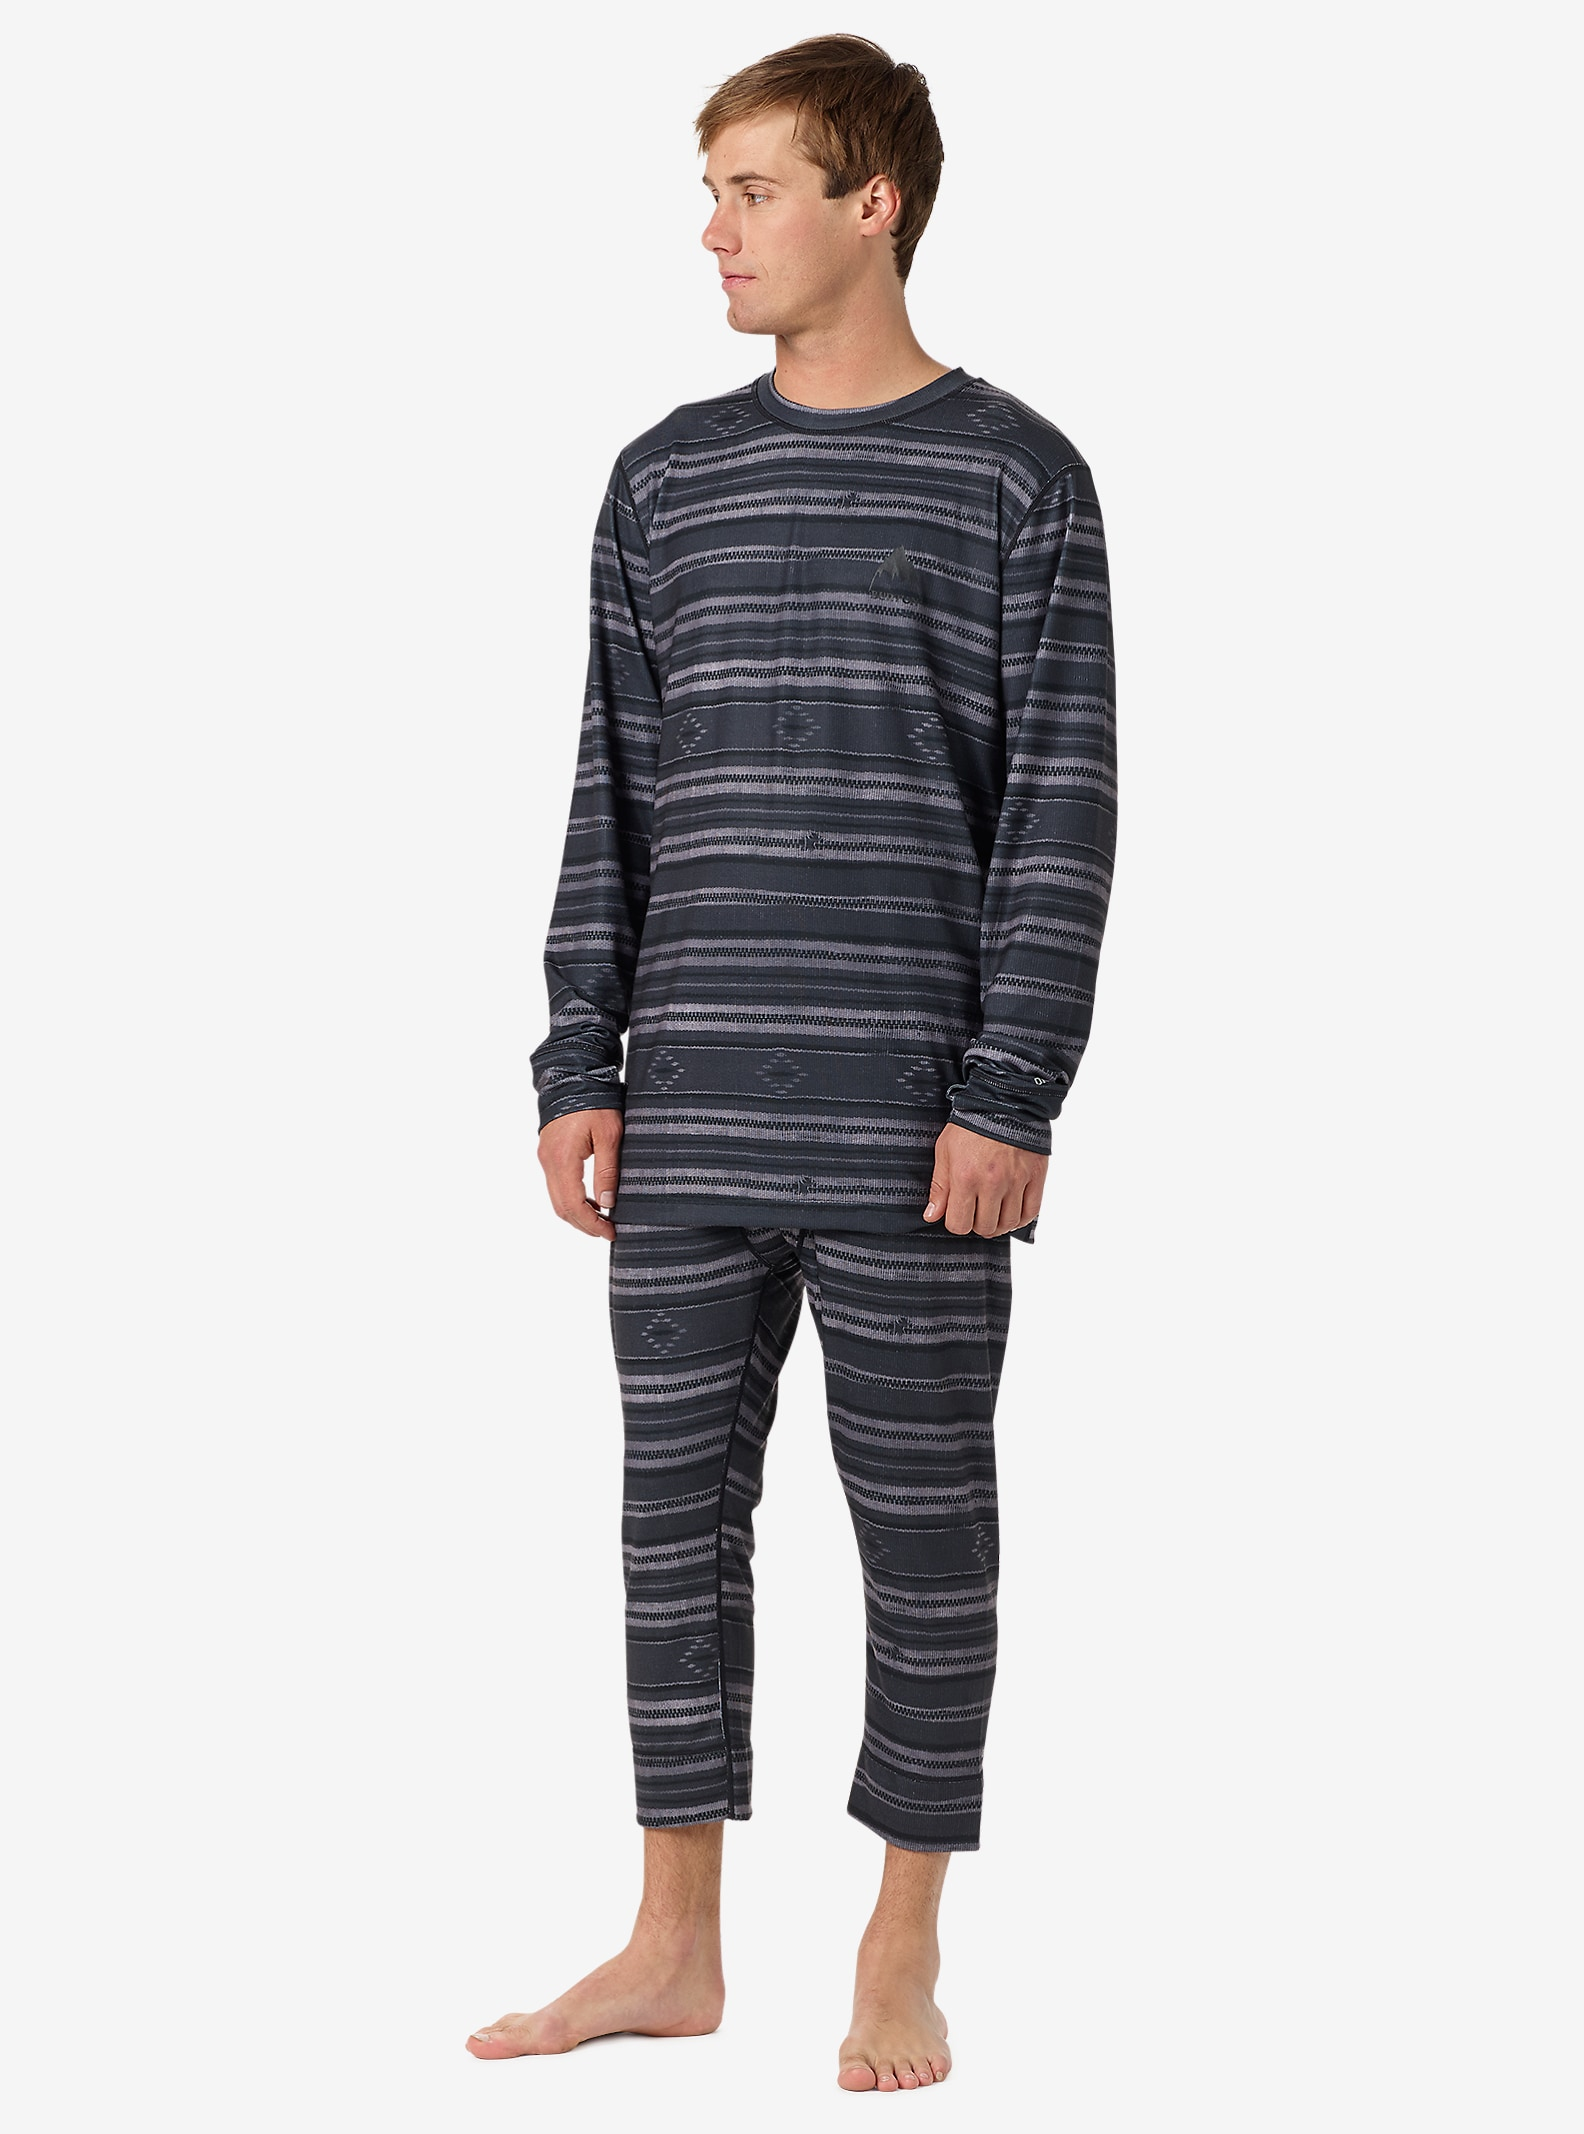 Burton Midweight Base Layer Shant shown in Faded Stag Stripe